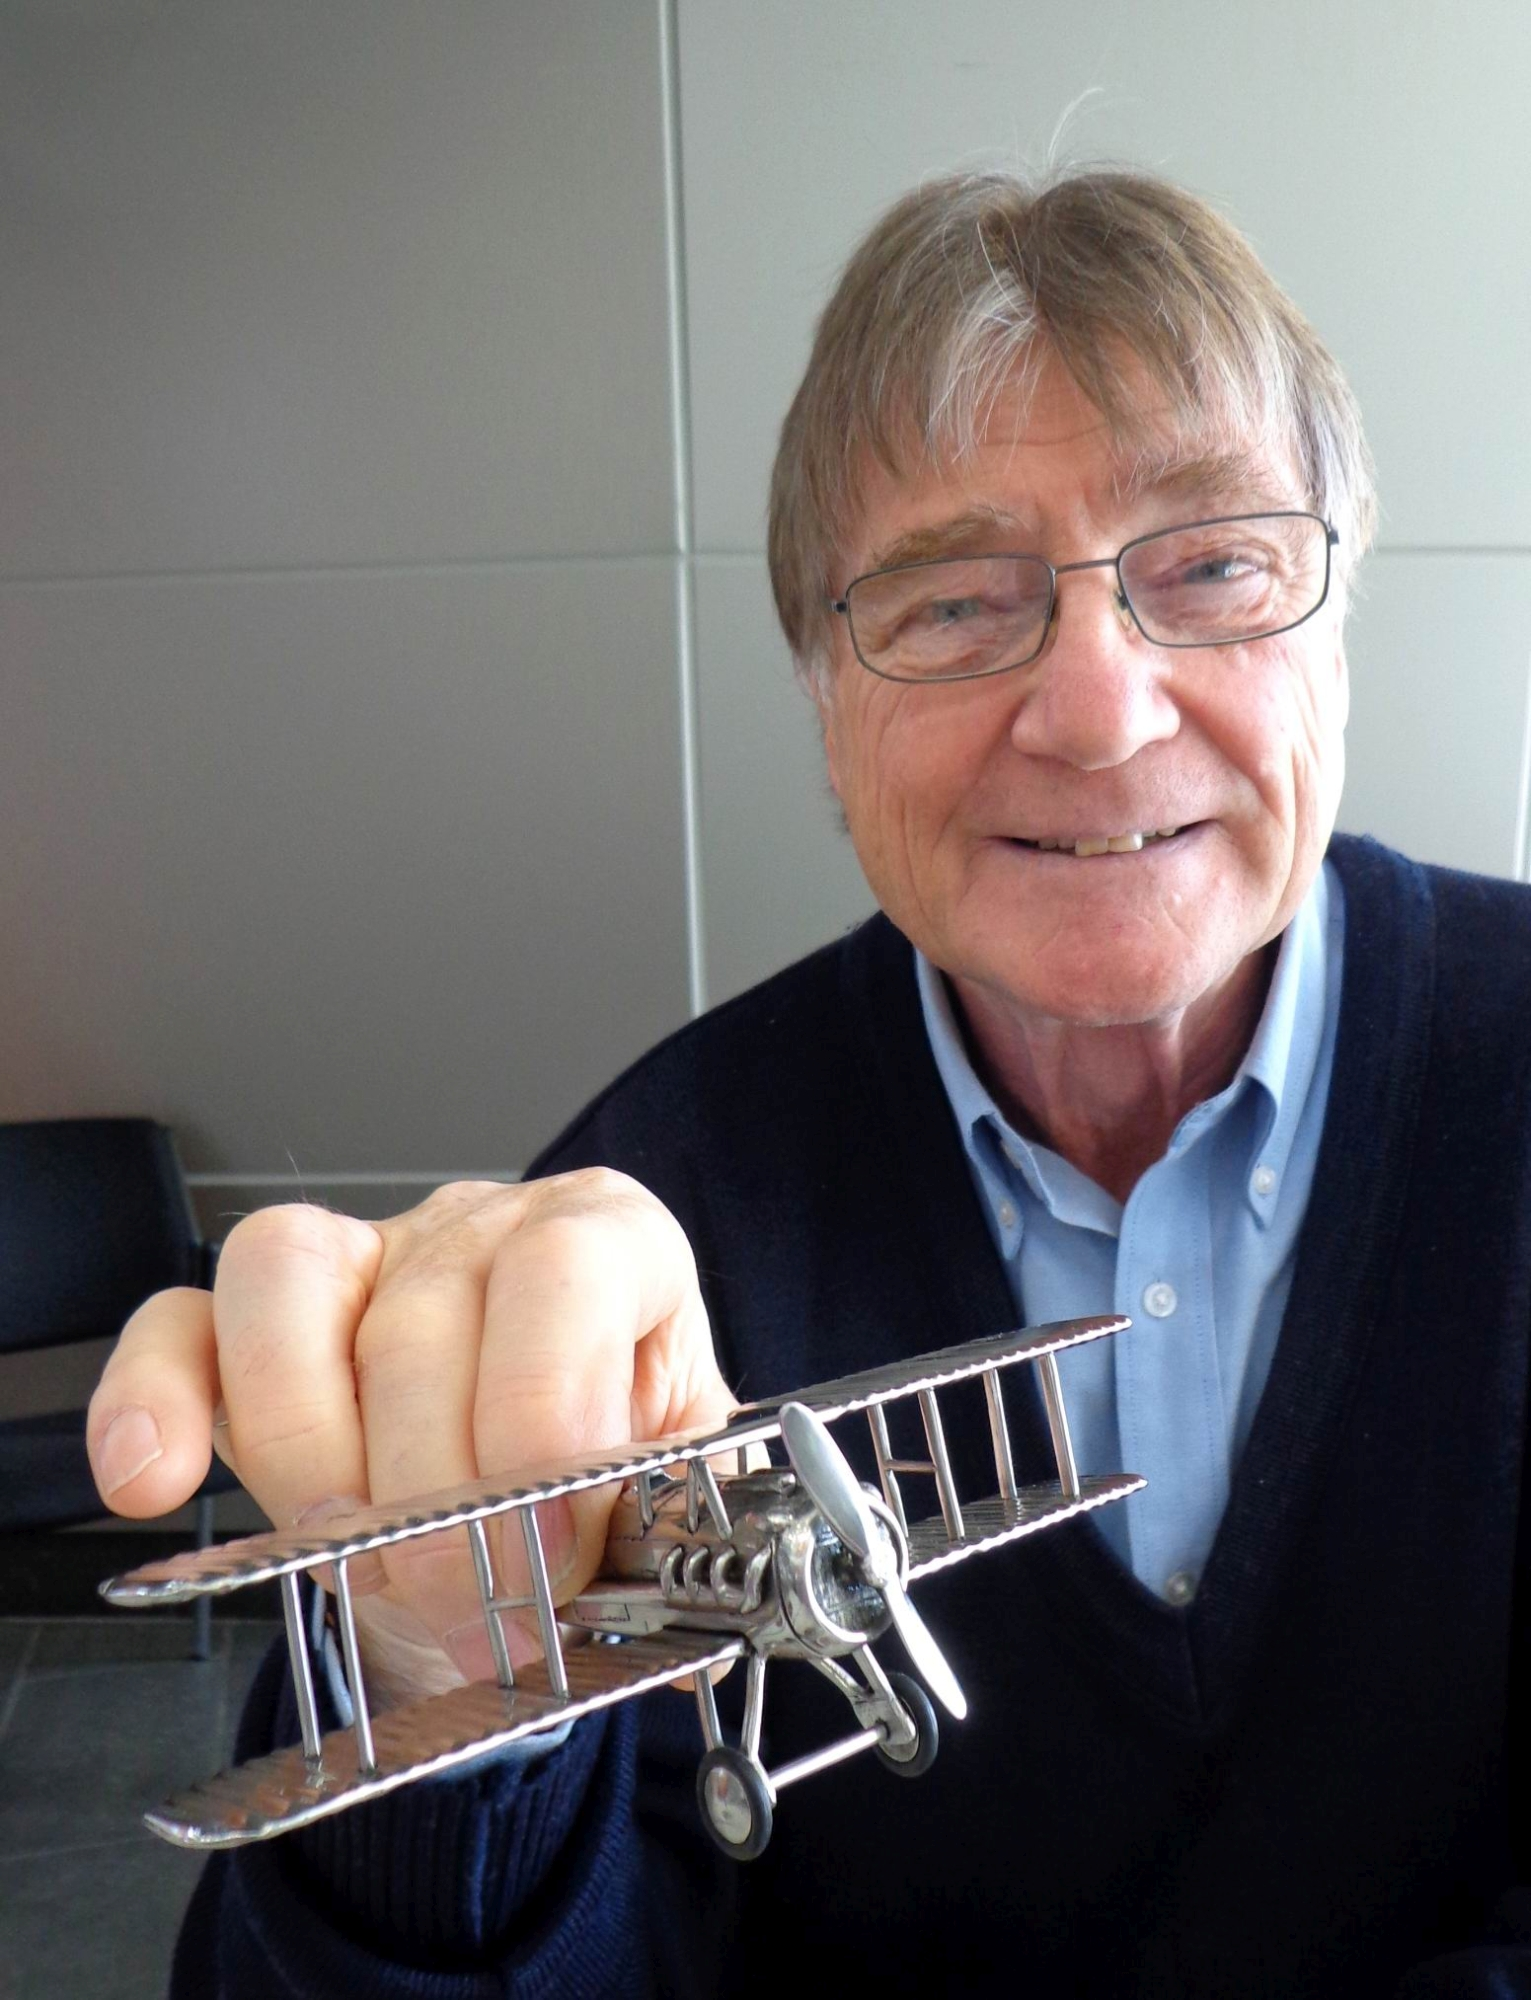 Leon Smith with one of his handmade model planes.